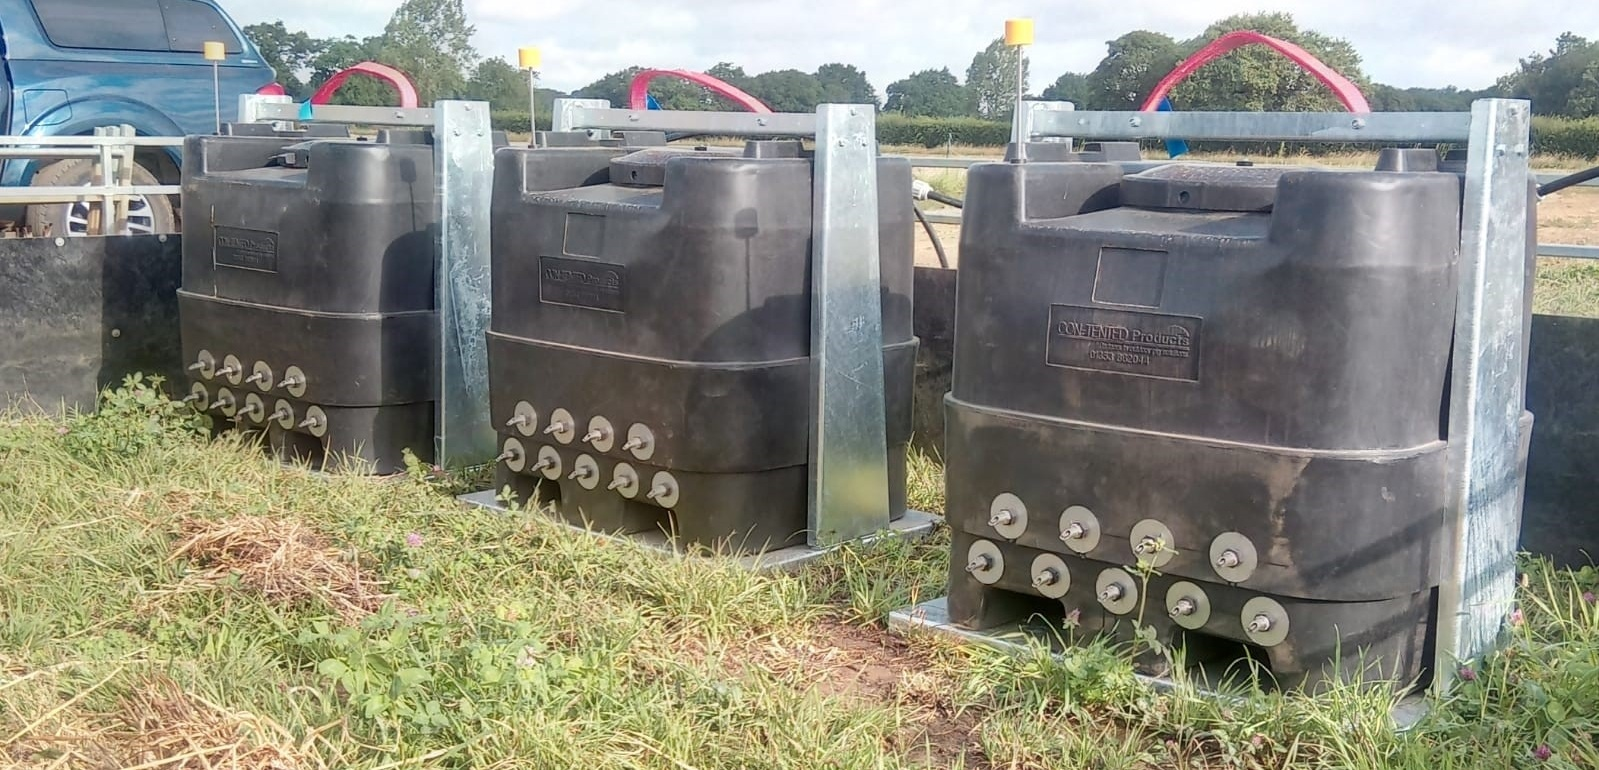 500l tanks setup in a lairage paddock